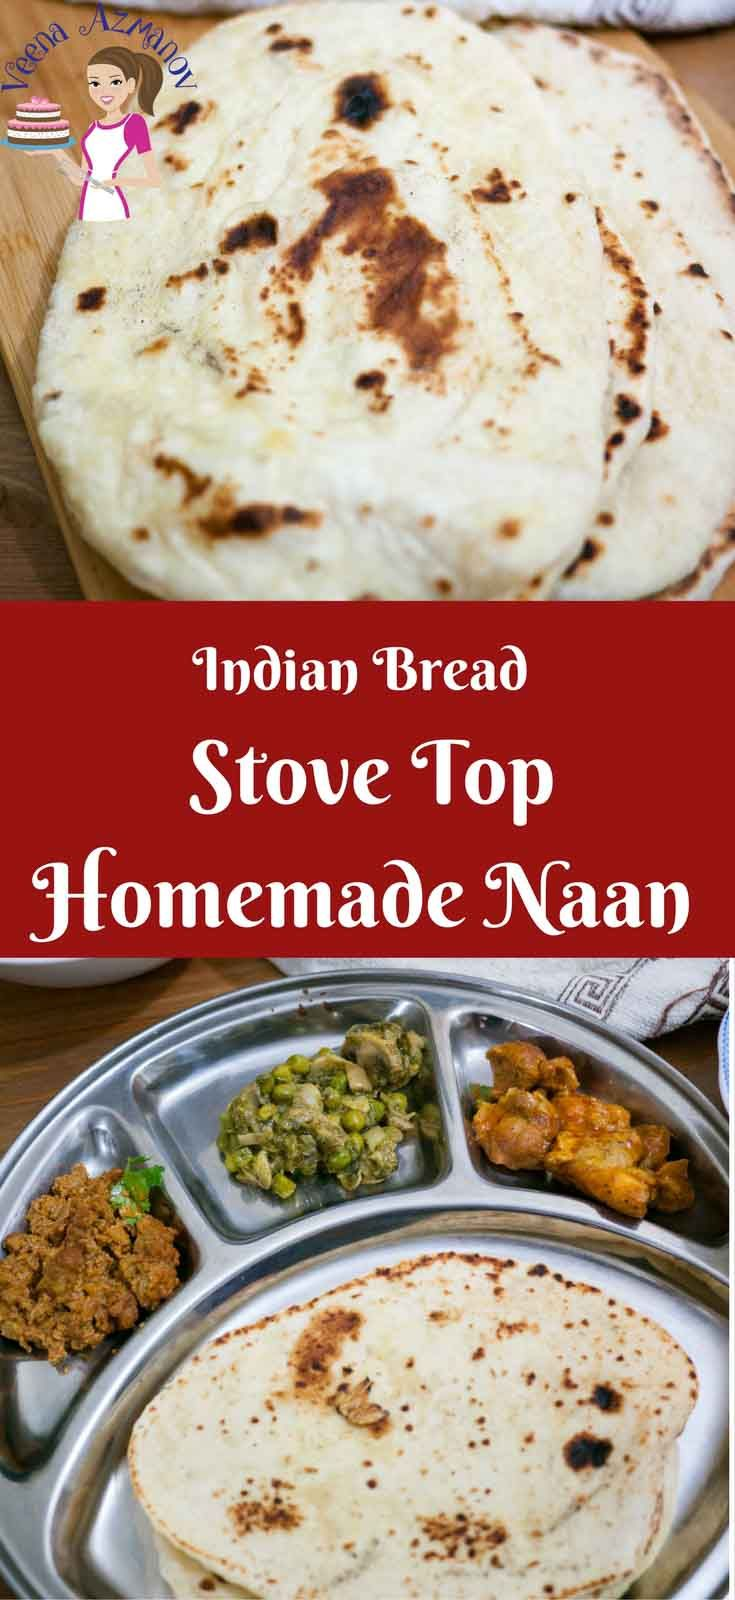 This Homemade Naan is an absolute treat. Simple, easy and delicious laden bread to eat with any Indian curry. Add some butter for butter naan, a few crushed garlic cloves for a garlic naan twist or simply sprinkle with pretty nigella seeds. #Naan #Homemade #stoveTop #cooking #NaanBread #GarlicNaan #ButterNaan #NigellaNaan